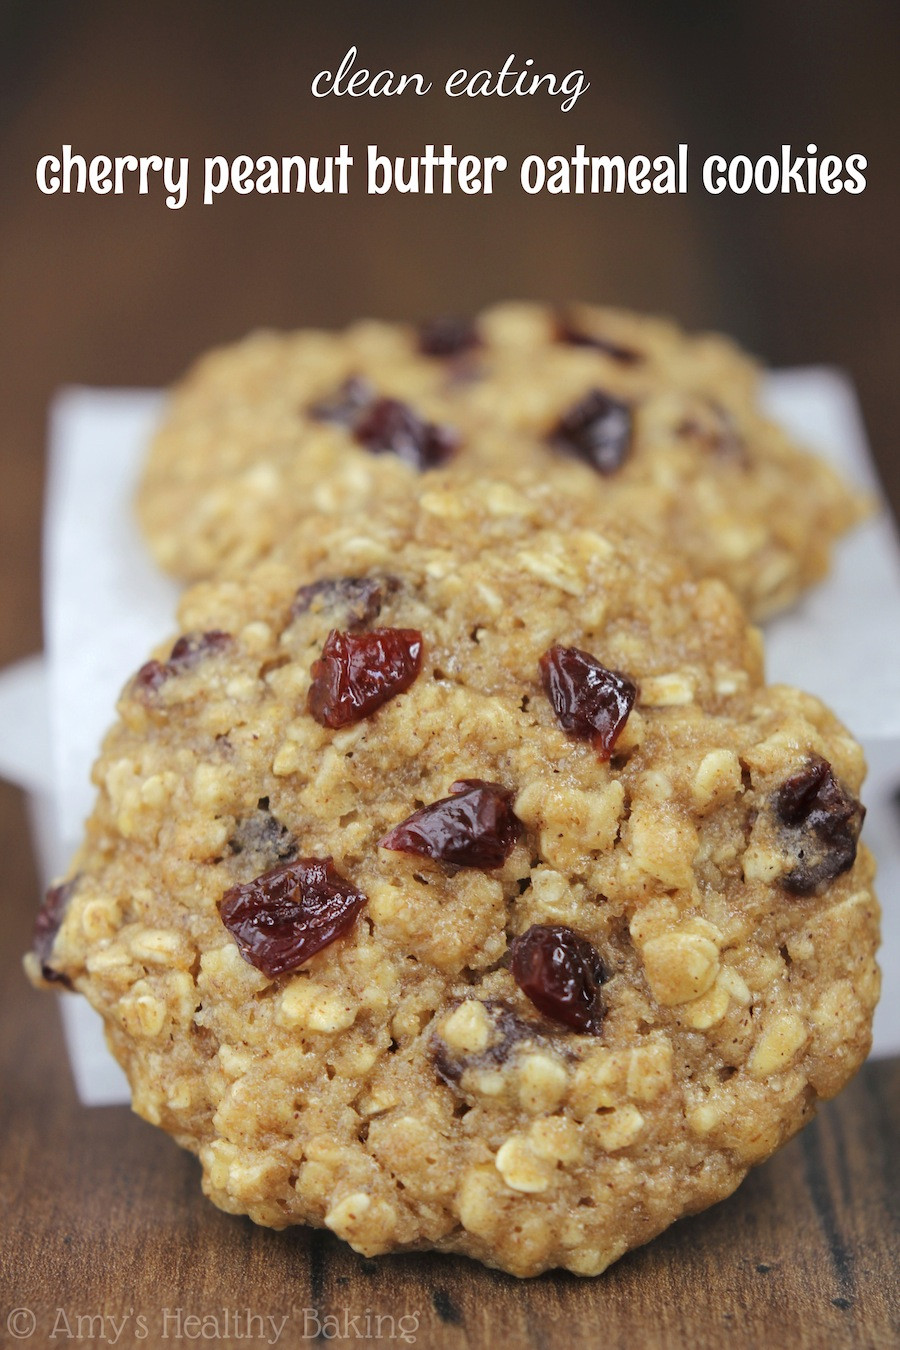 Oatmeal Peanut Butter Cookies Healthy  Cherry Peanut Butter Oatmeal Cookies